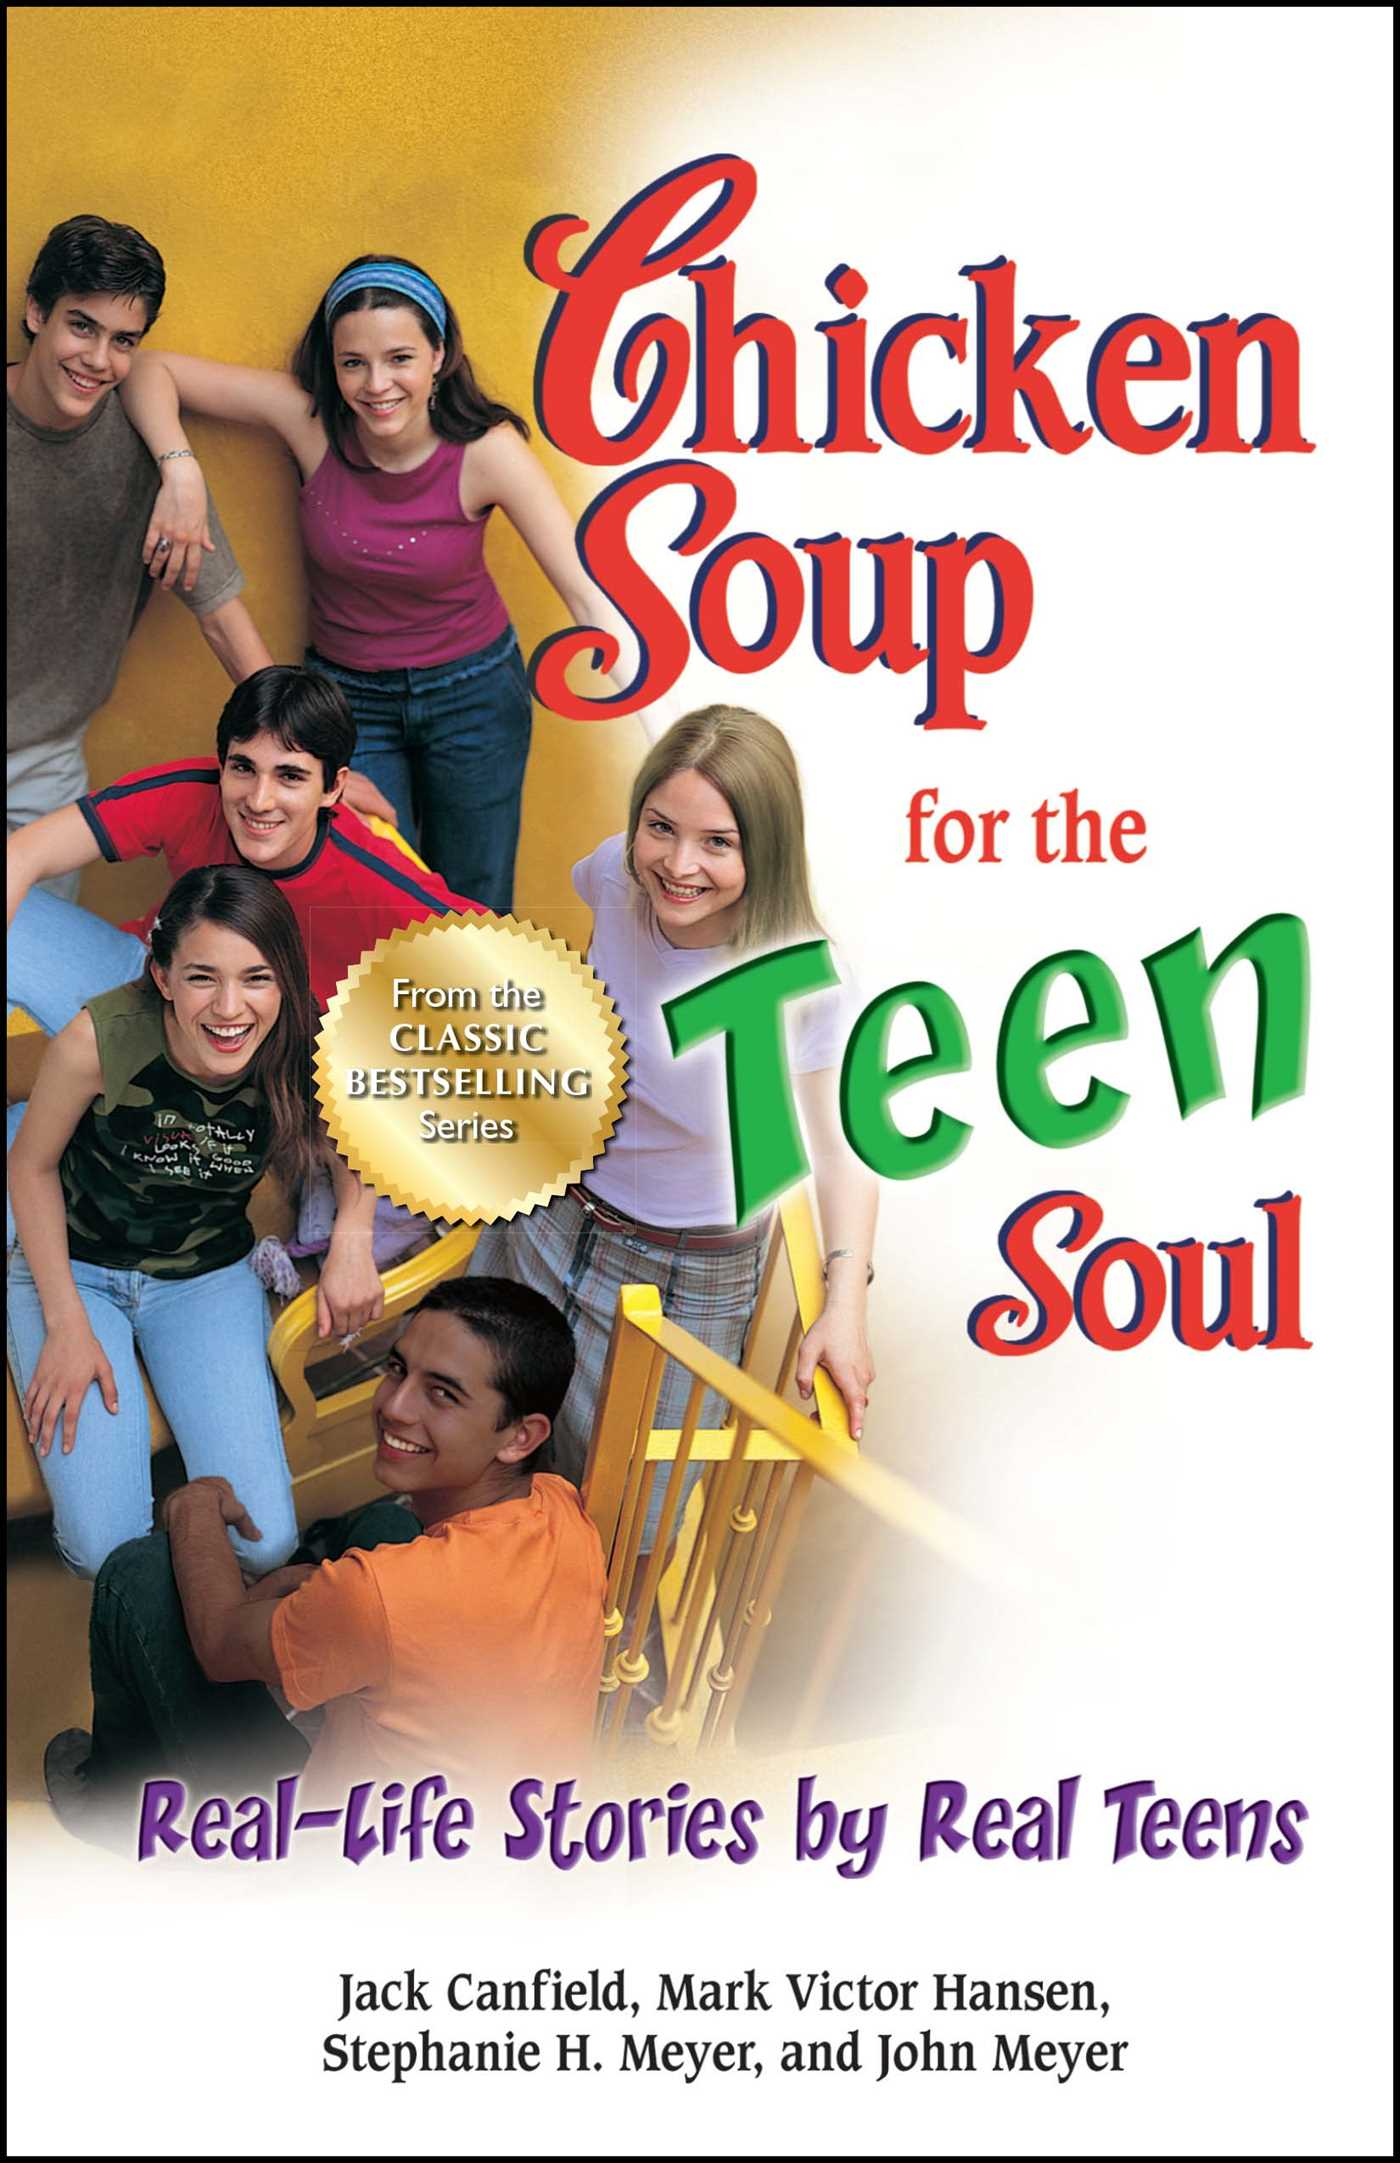 Chicken-soup-for-the-teen-soul-9781623610807_hr